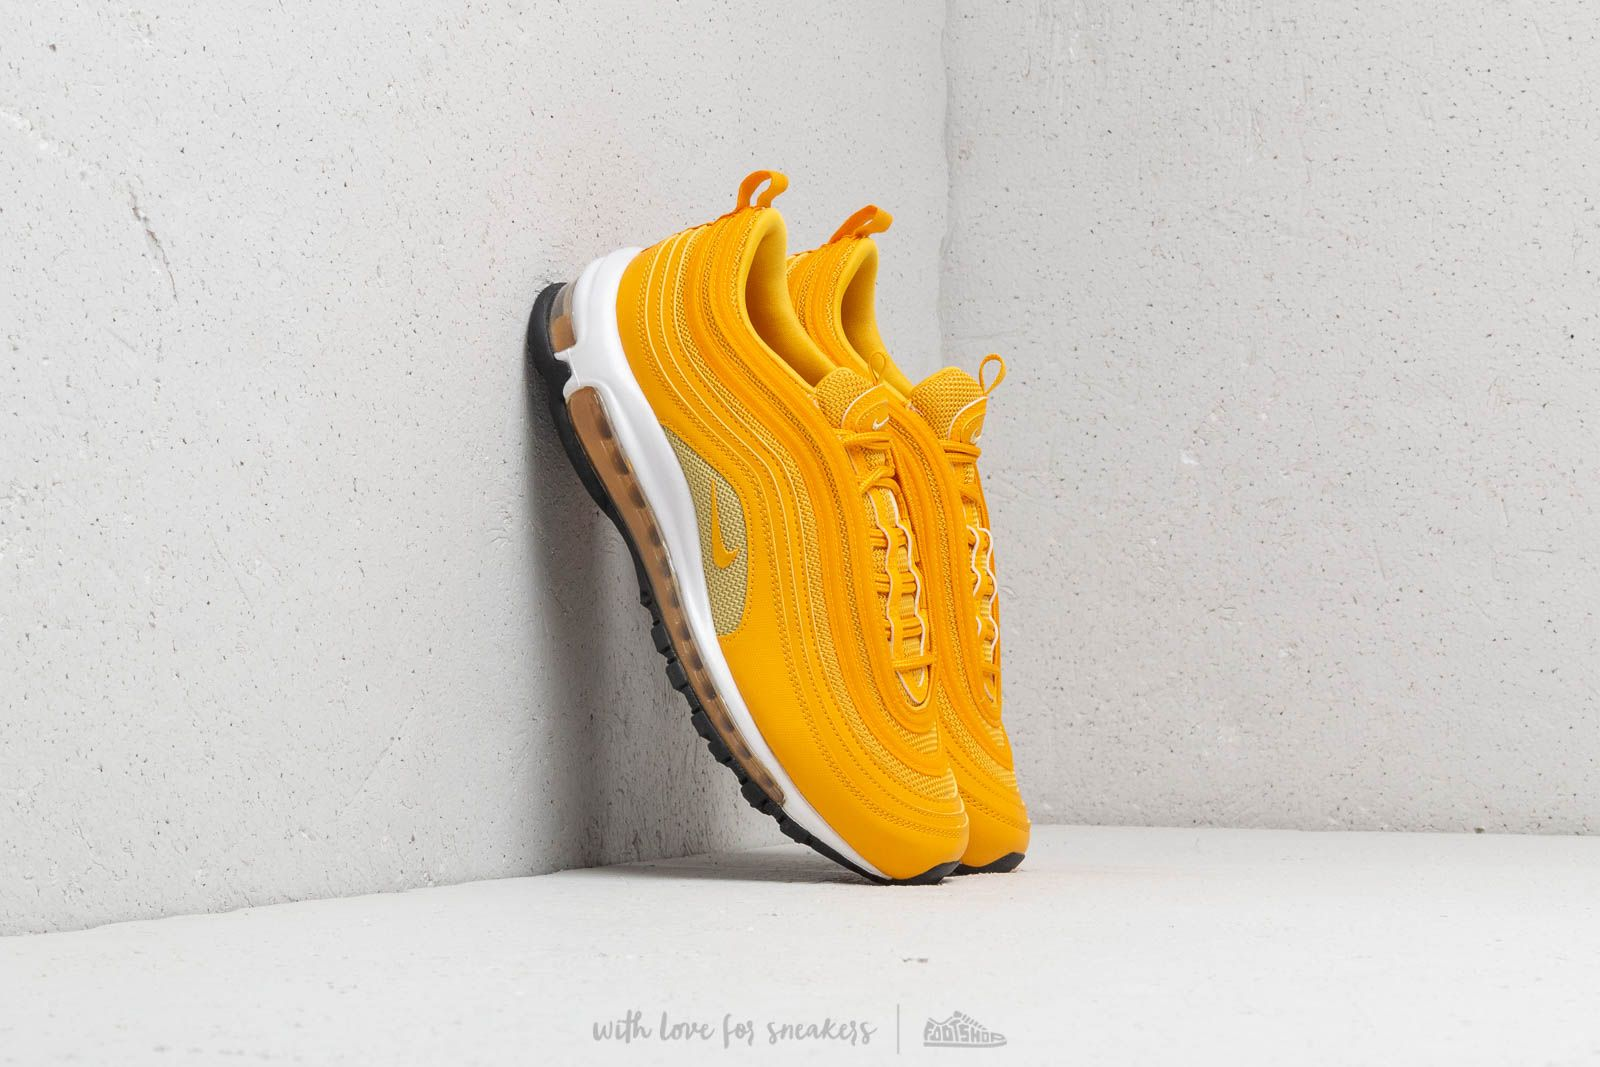 dcd66d0e23157 Nike Air Max 97 Wm's Mustard/ Mustard-Buff Gold | Footshop